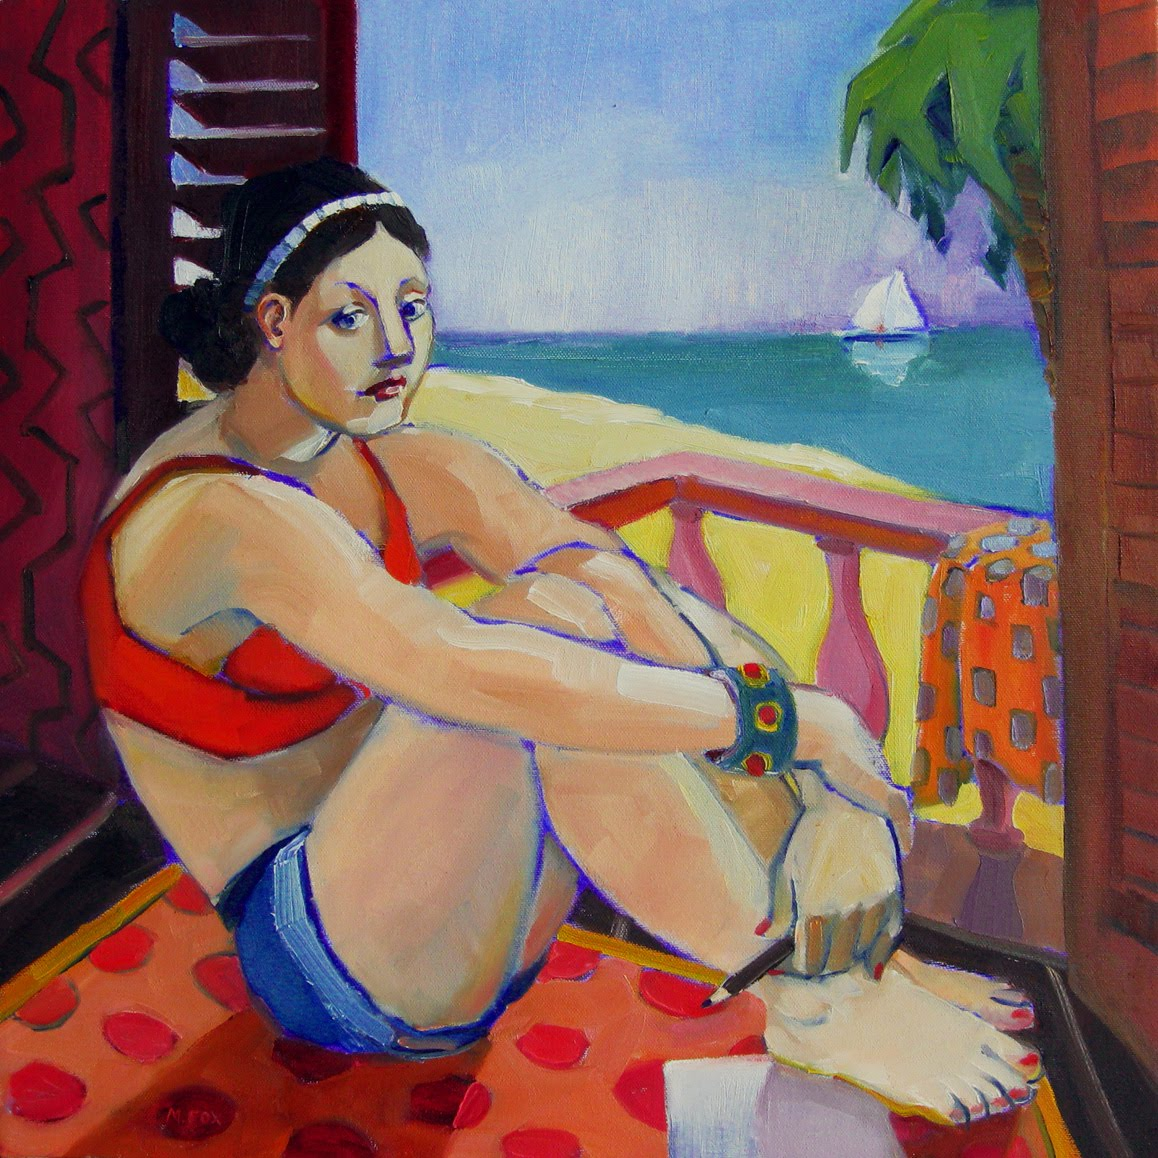 French Memories Oil Painting Canvas Colorful Figurative Art Woman At Beach Semi Nude Female Figure Riviera